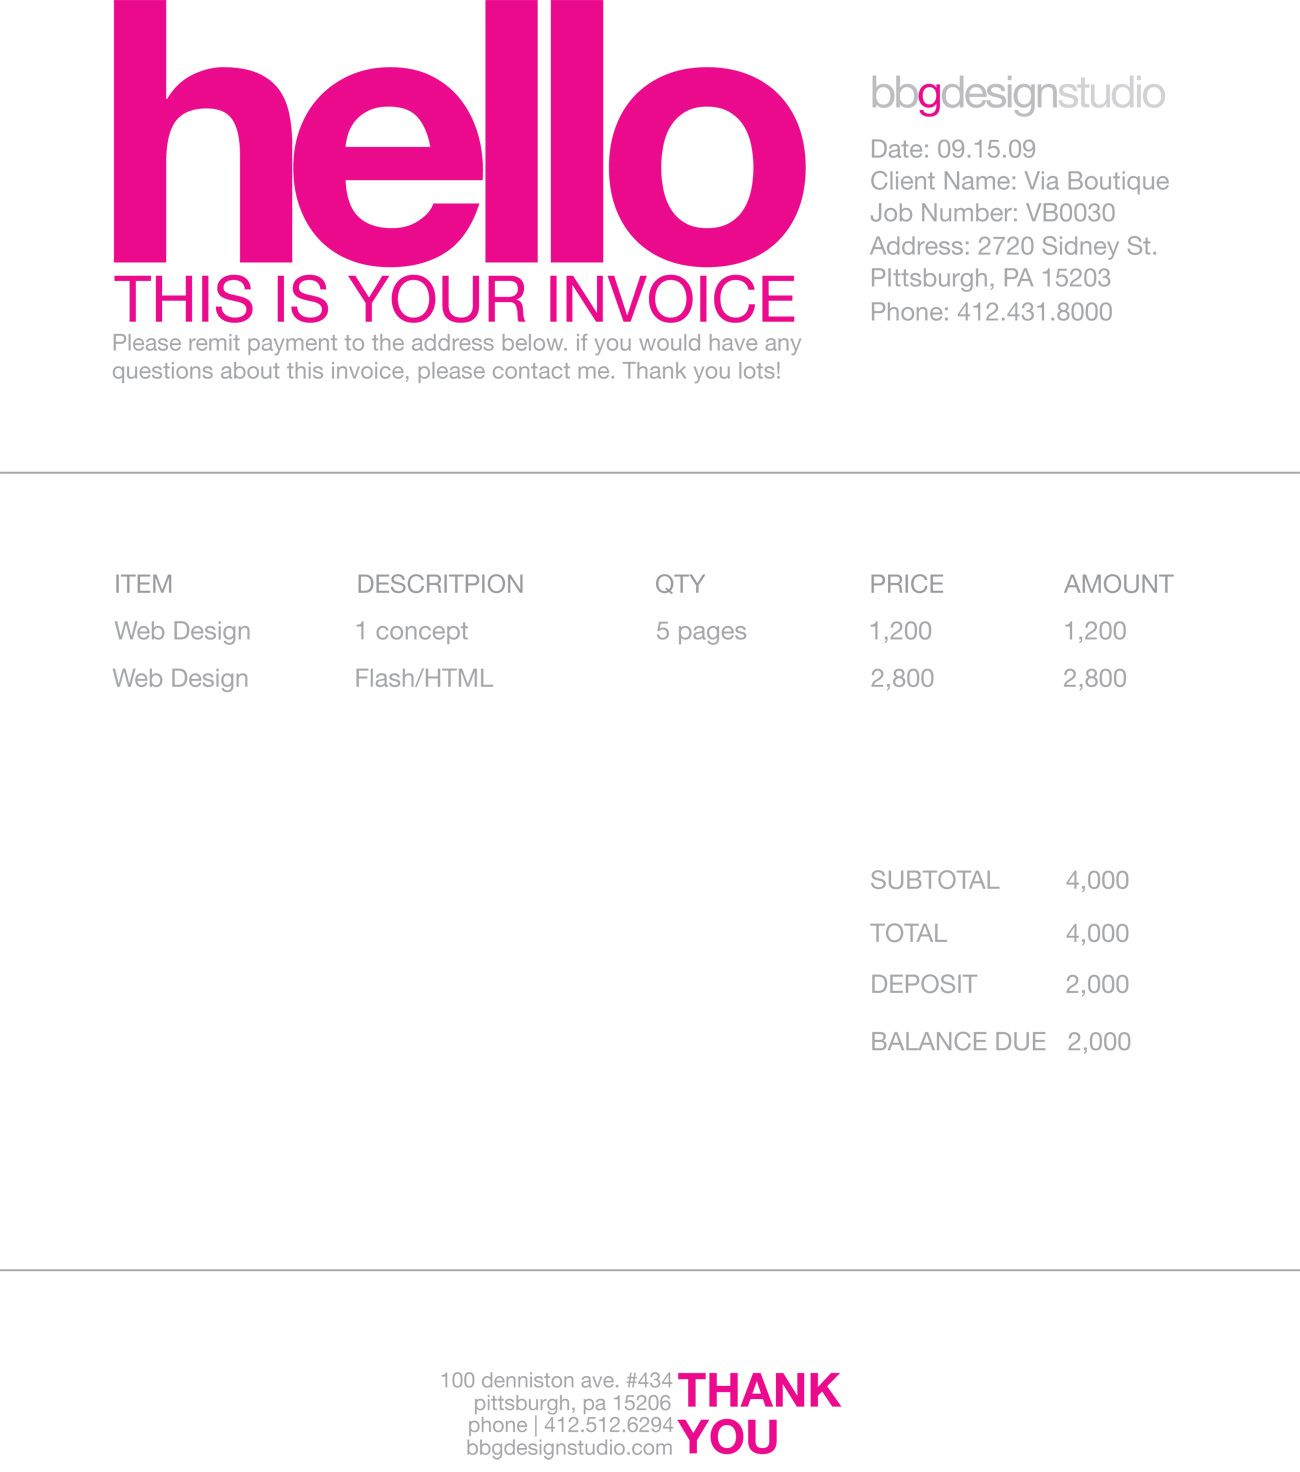 Coachoutletonlineplusus  Stunning  Images About Invoice Design On Pinterest With Luxury Sliq Invoicing Besides Car Dealer Invoice Price Furthermore Pro Forma Invoice Definition With Beauteous Car Invoices Also Canadian Commercial Invoice In Addition Invoice Software Free And Invoice Wave As Well As Dummy Invoice Additionally Invoicing Programs From Pinterestcom With Coachoutletonlineplusus  Luxury  Images About Invoice Design On Pinterest With Beauteous Sliq Invoicing Besides Car Dealer Invoice Price Furthermore Pro Forma Invoice Definition And Stunning Car Invoices Also Canadian Commercial Invoice In Addition Invoice Software Free From Pinterestcom